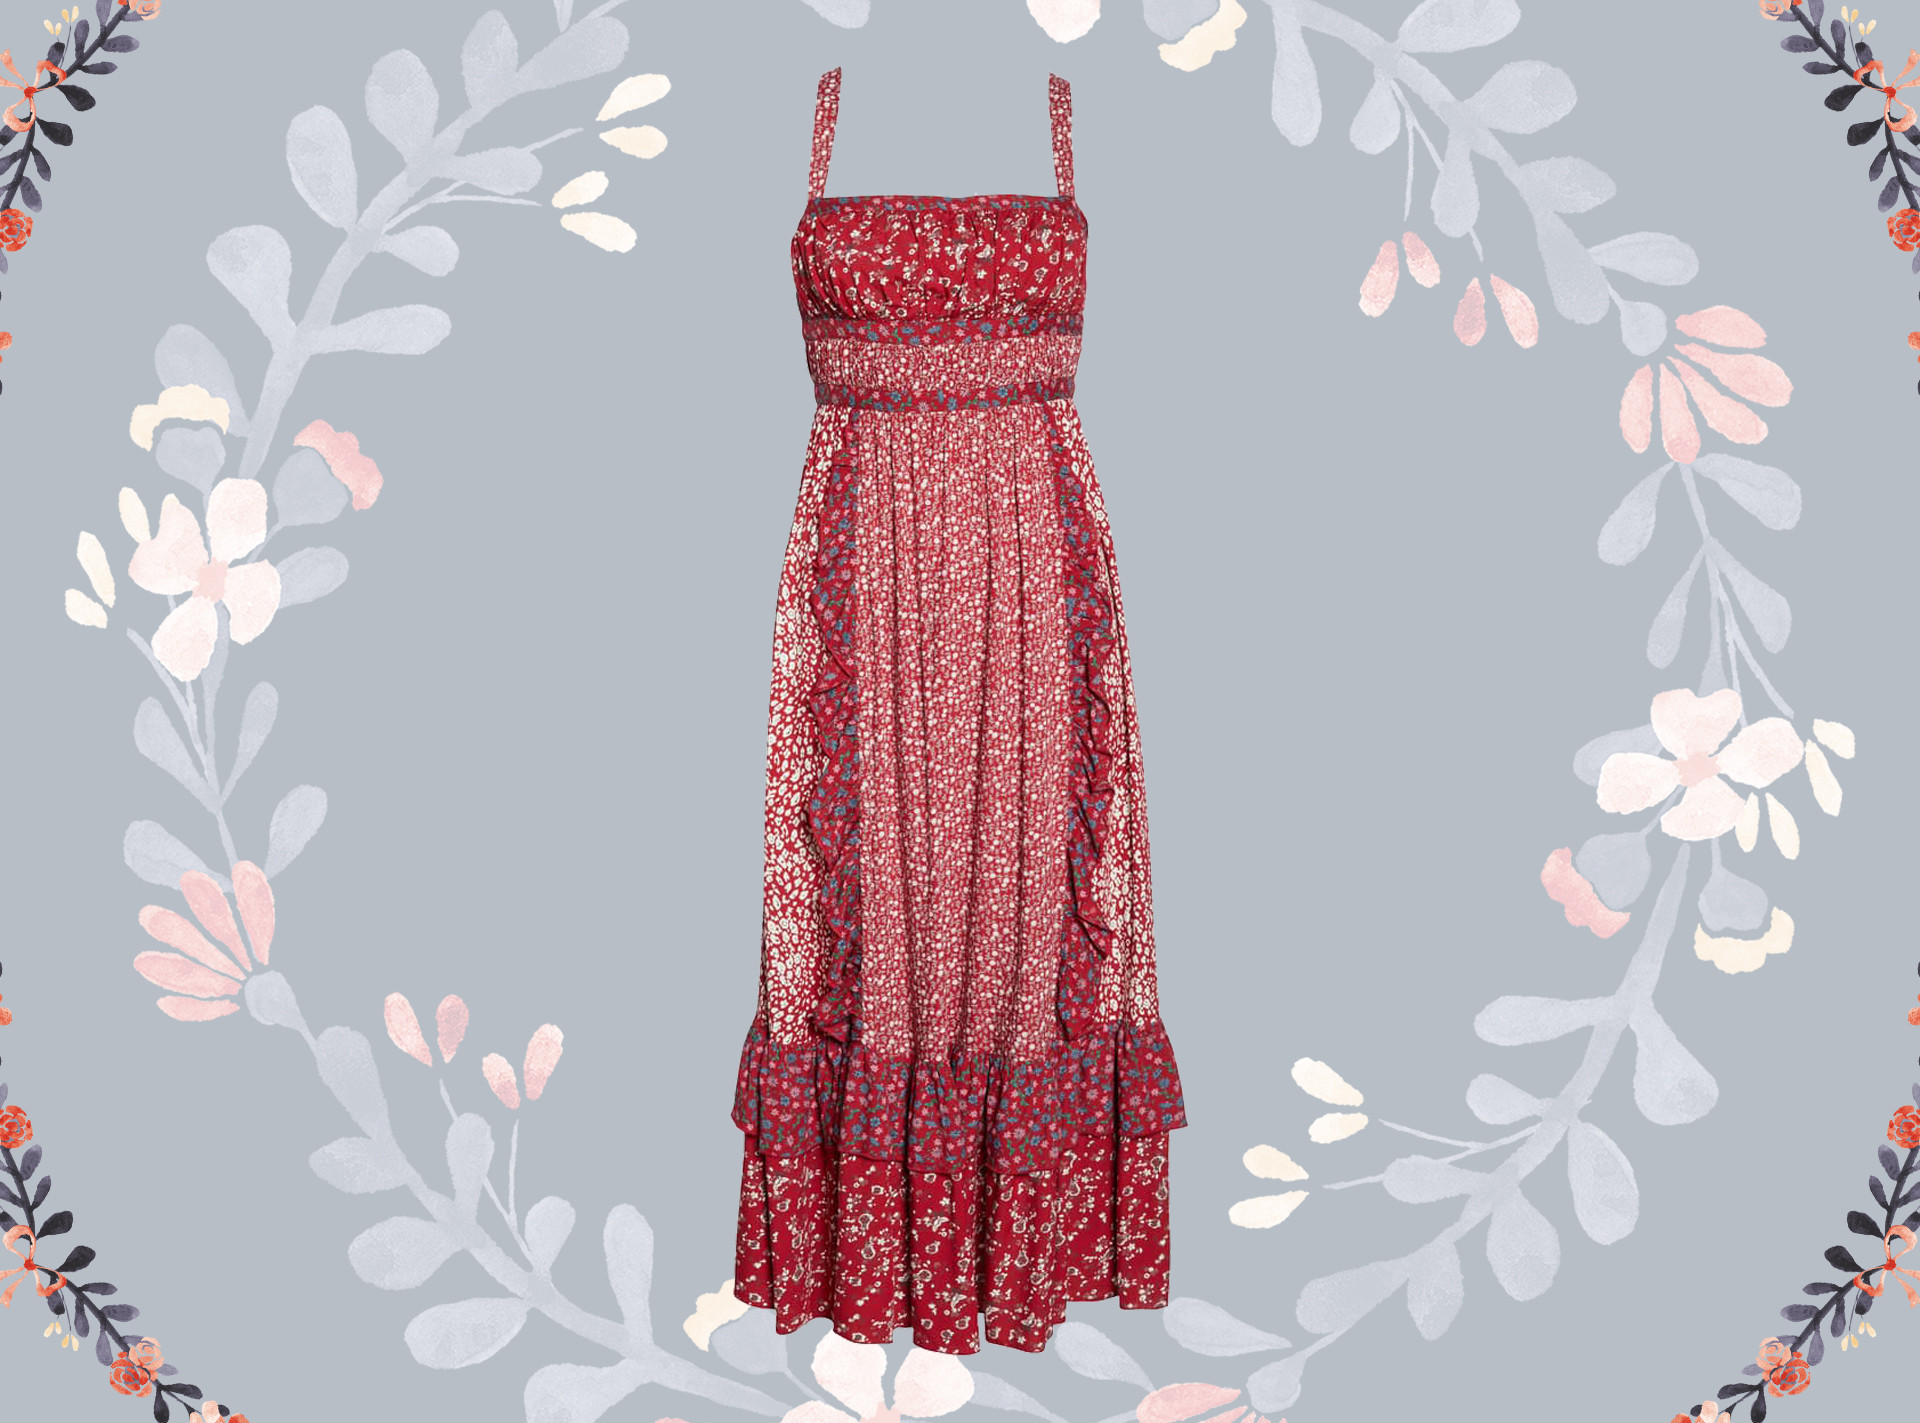 E-Comm: Boho Dresses on Sale